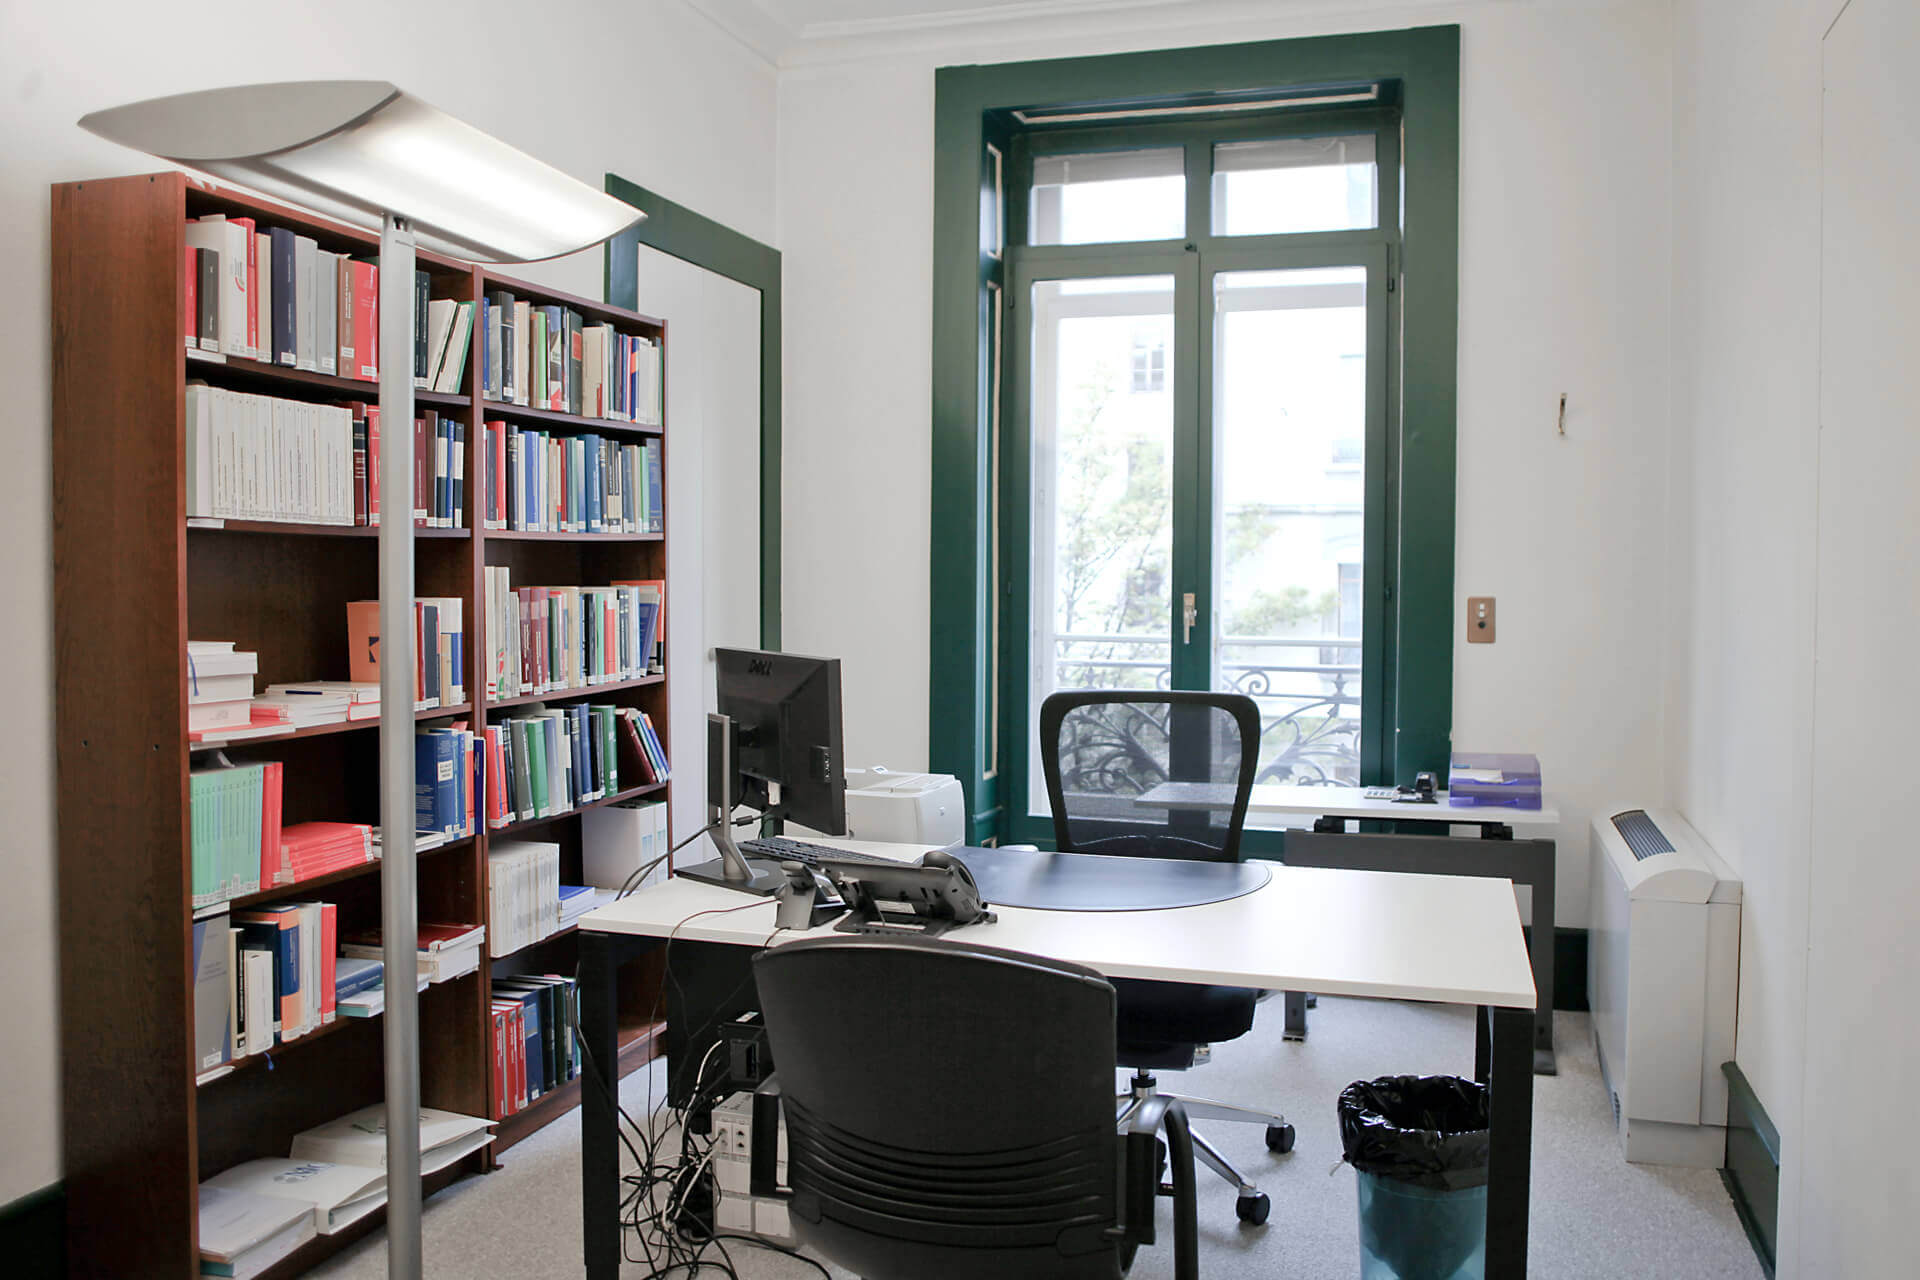 bureau avocat bureau d un avocat 28 images wenric sprl avocat architecte d int 233 rieur karine. Black Bedroom Furniture Sets. Home Design Ideas